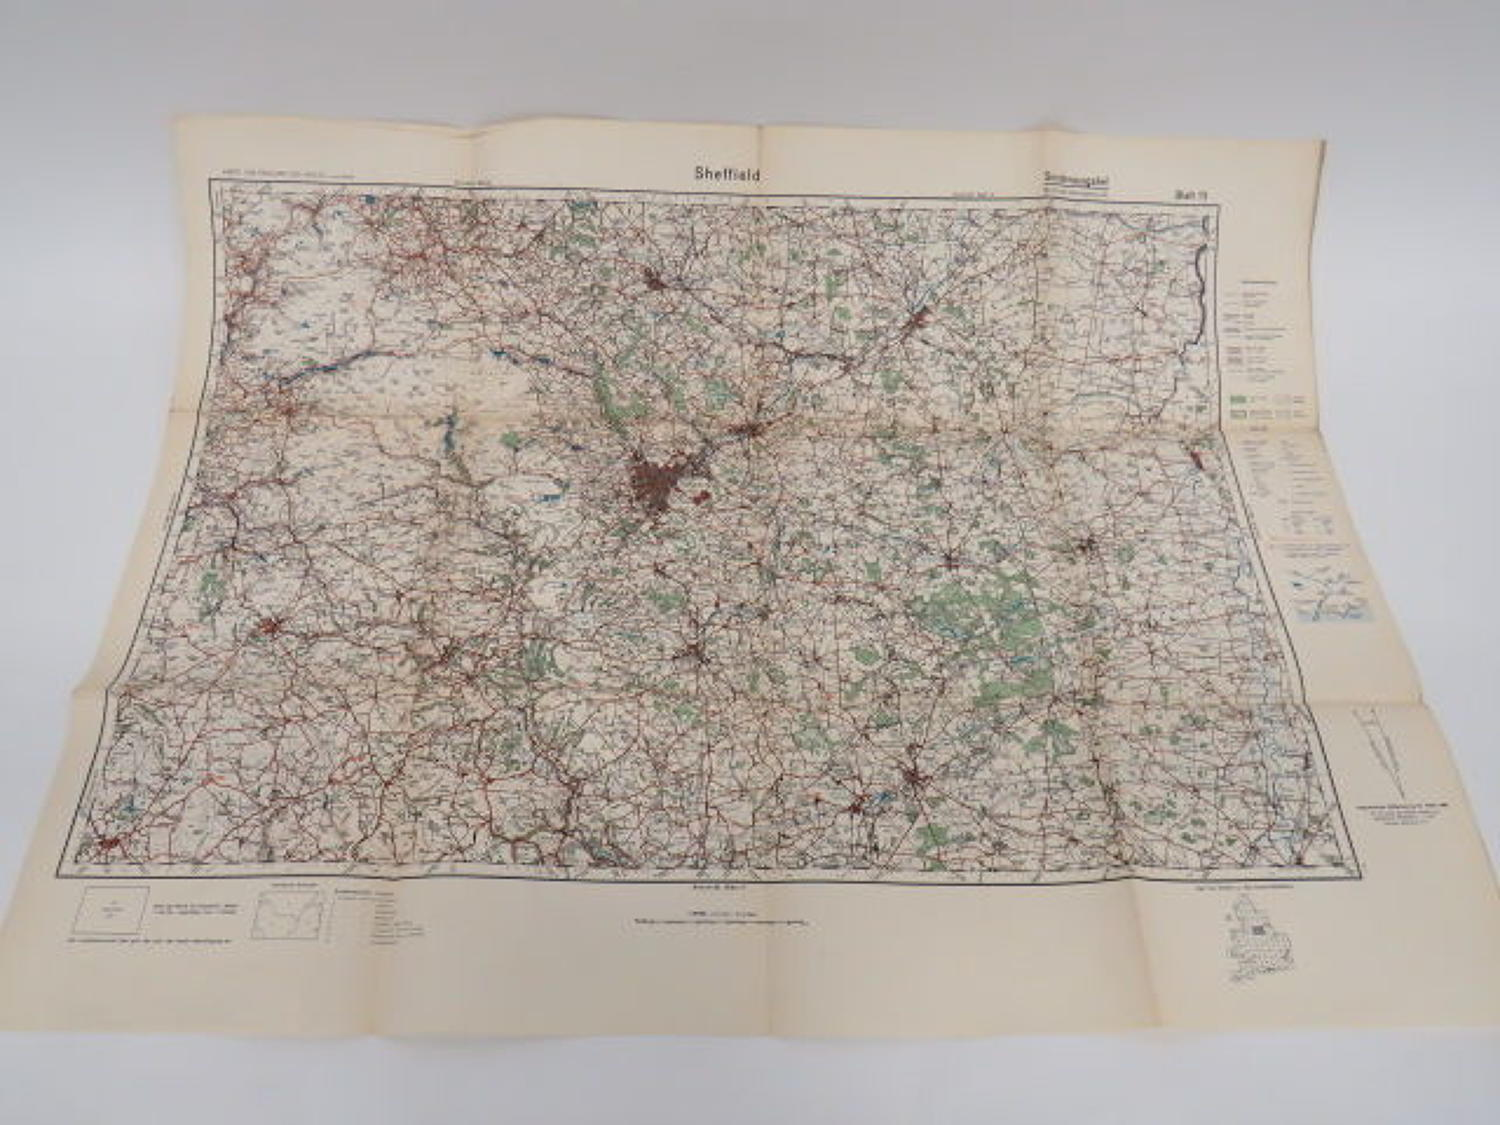 WW 2 German Invasion Map of Sheffield